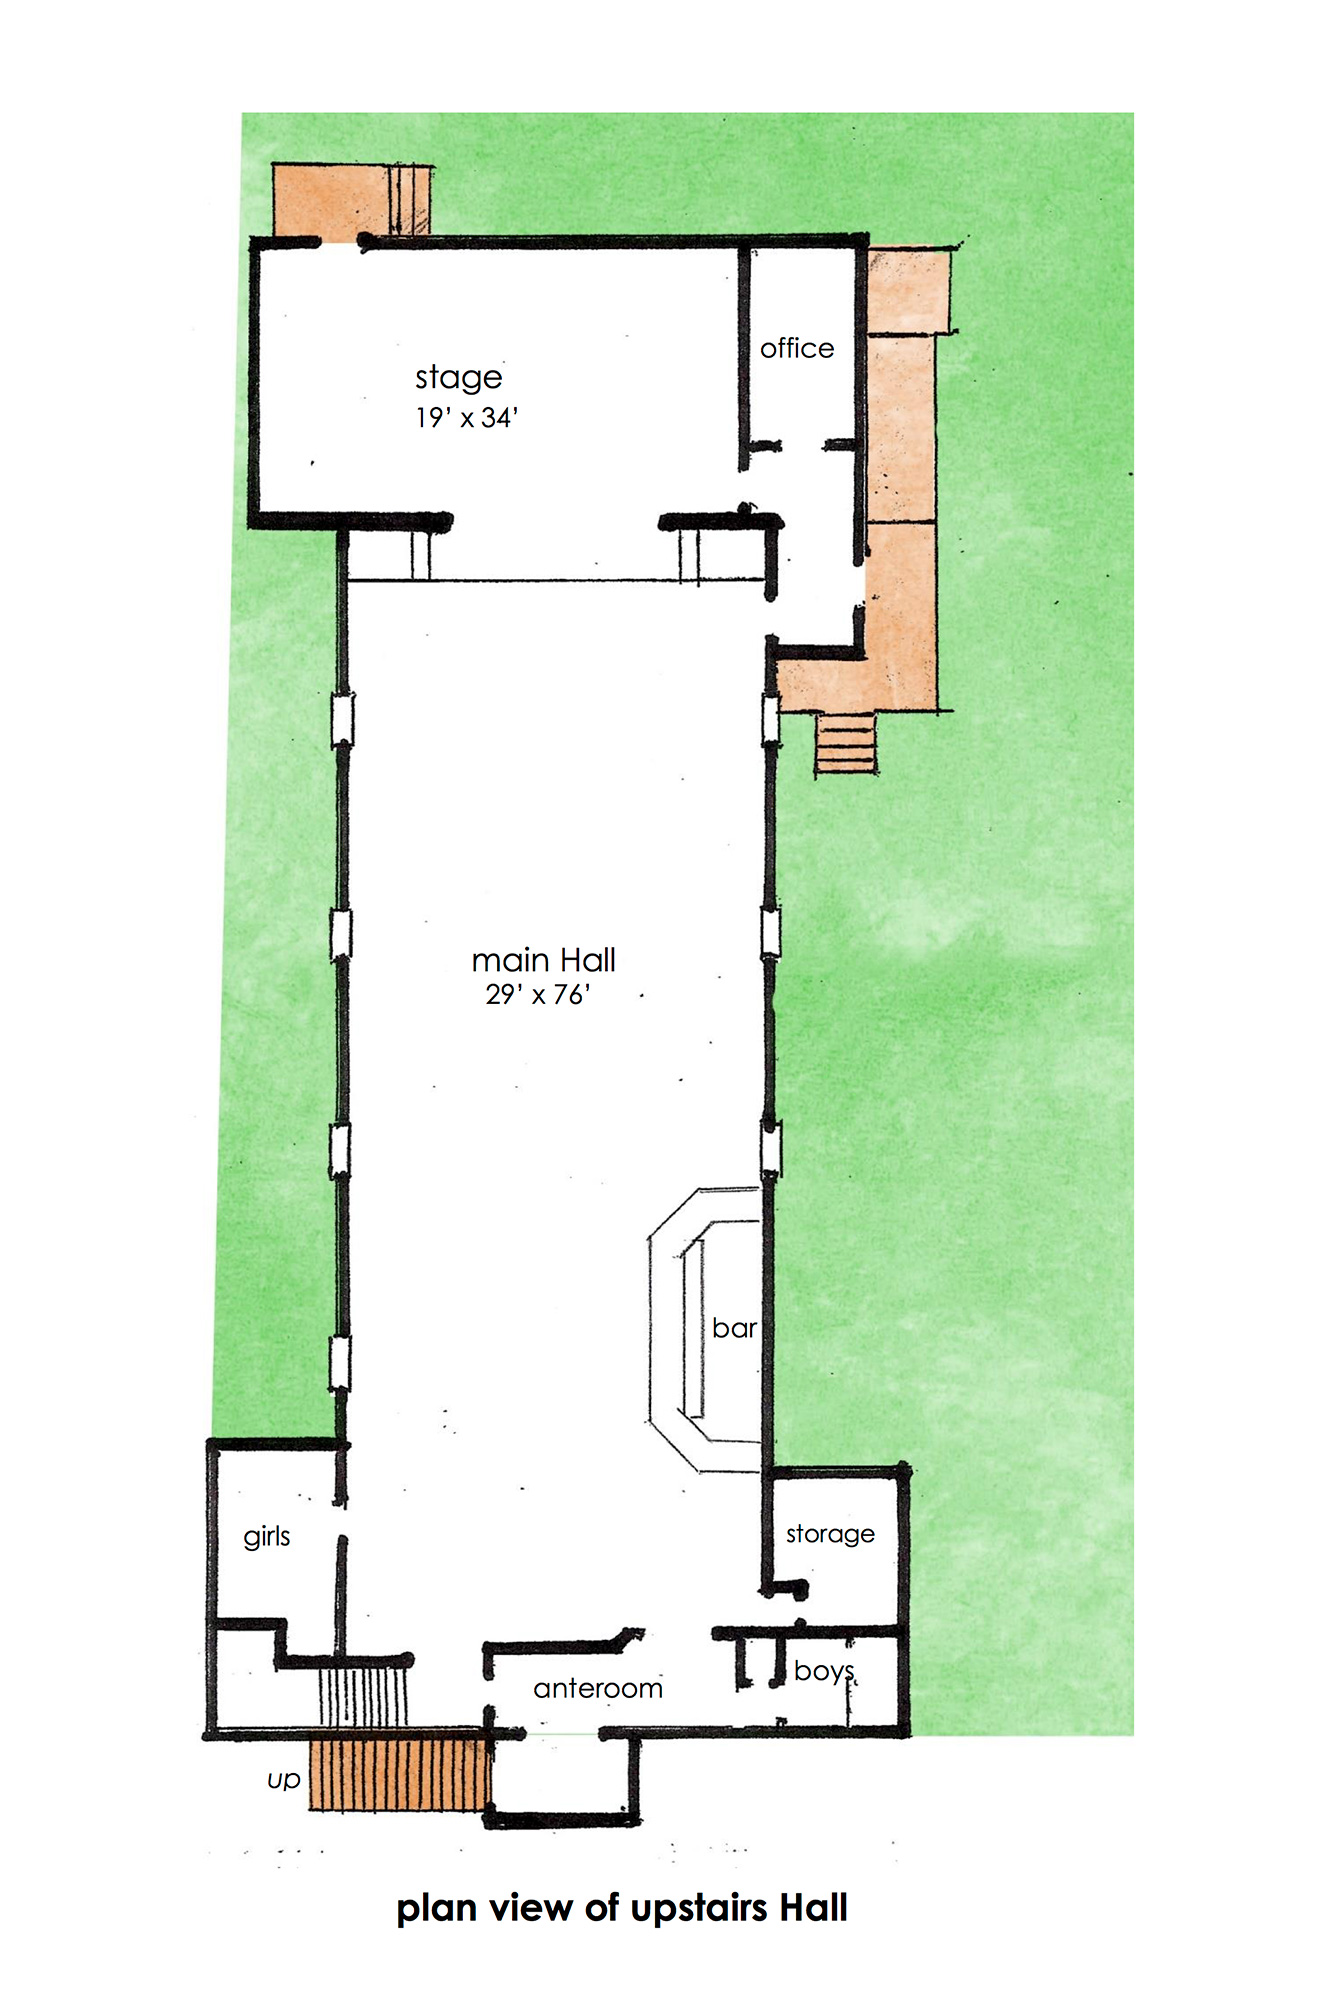 Plan View of Upstairs